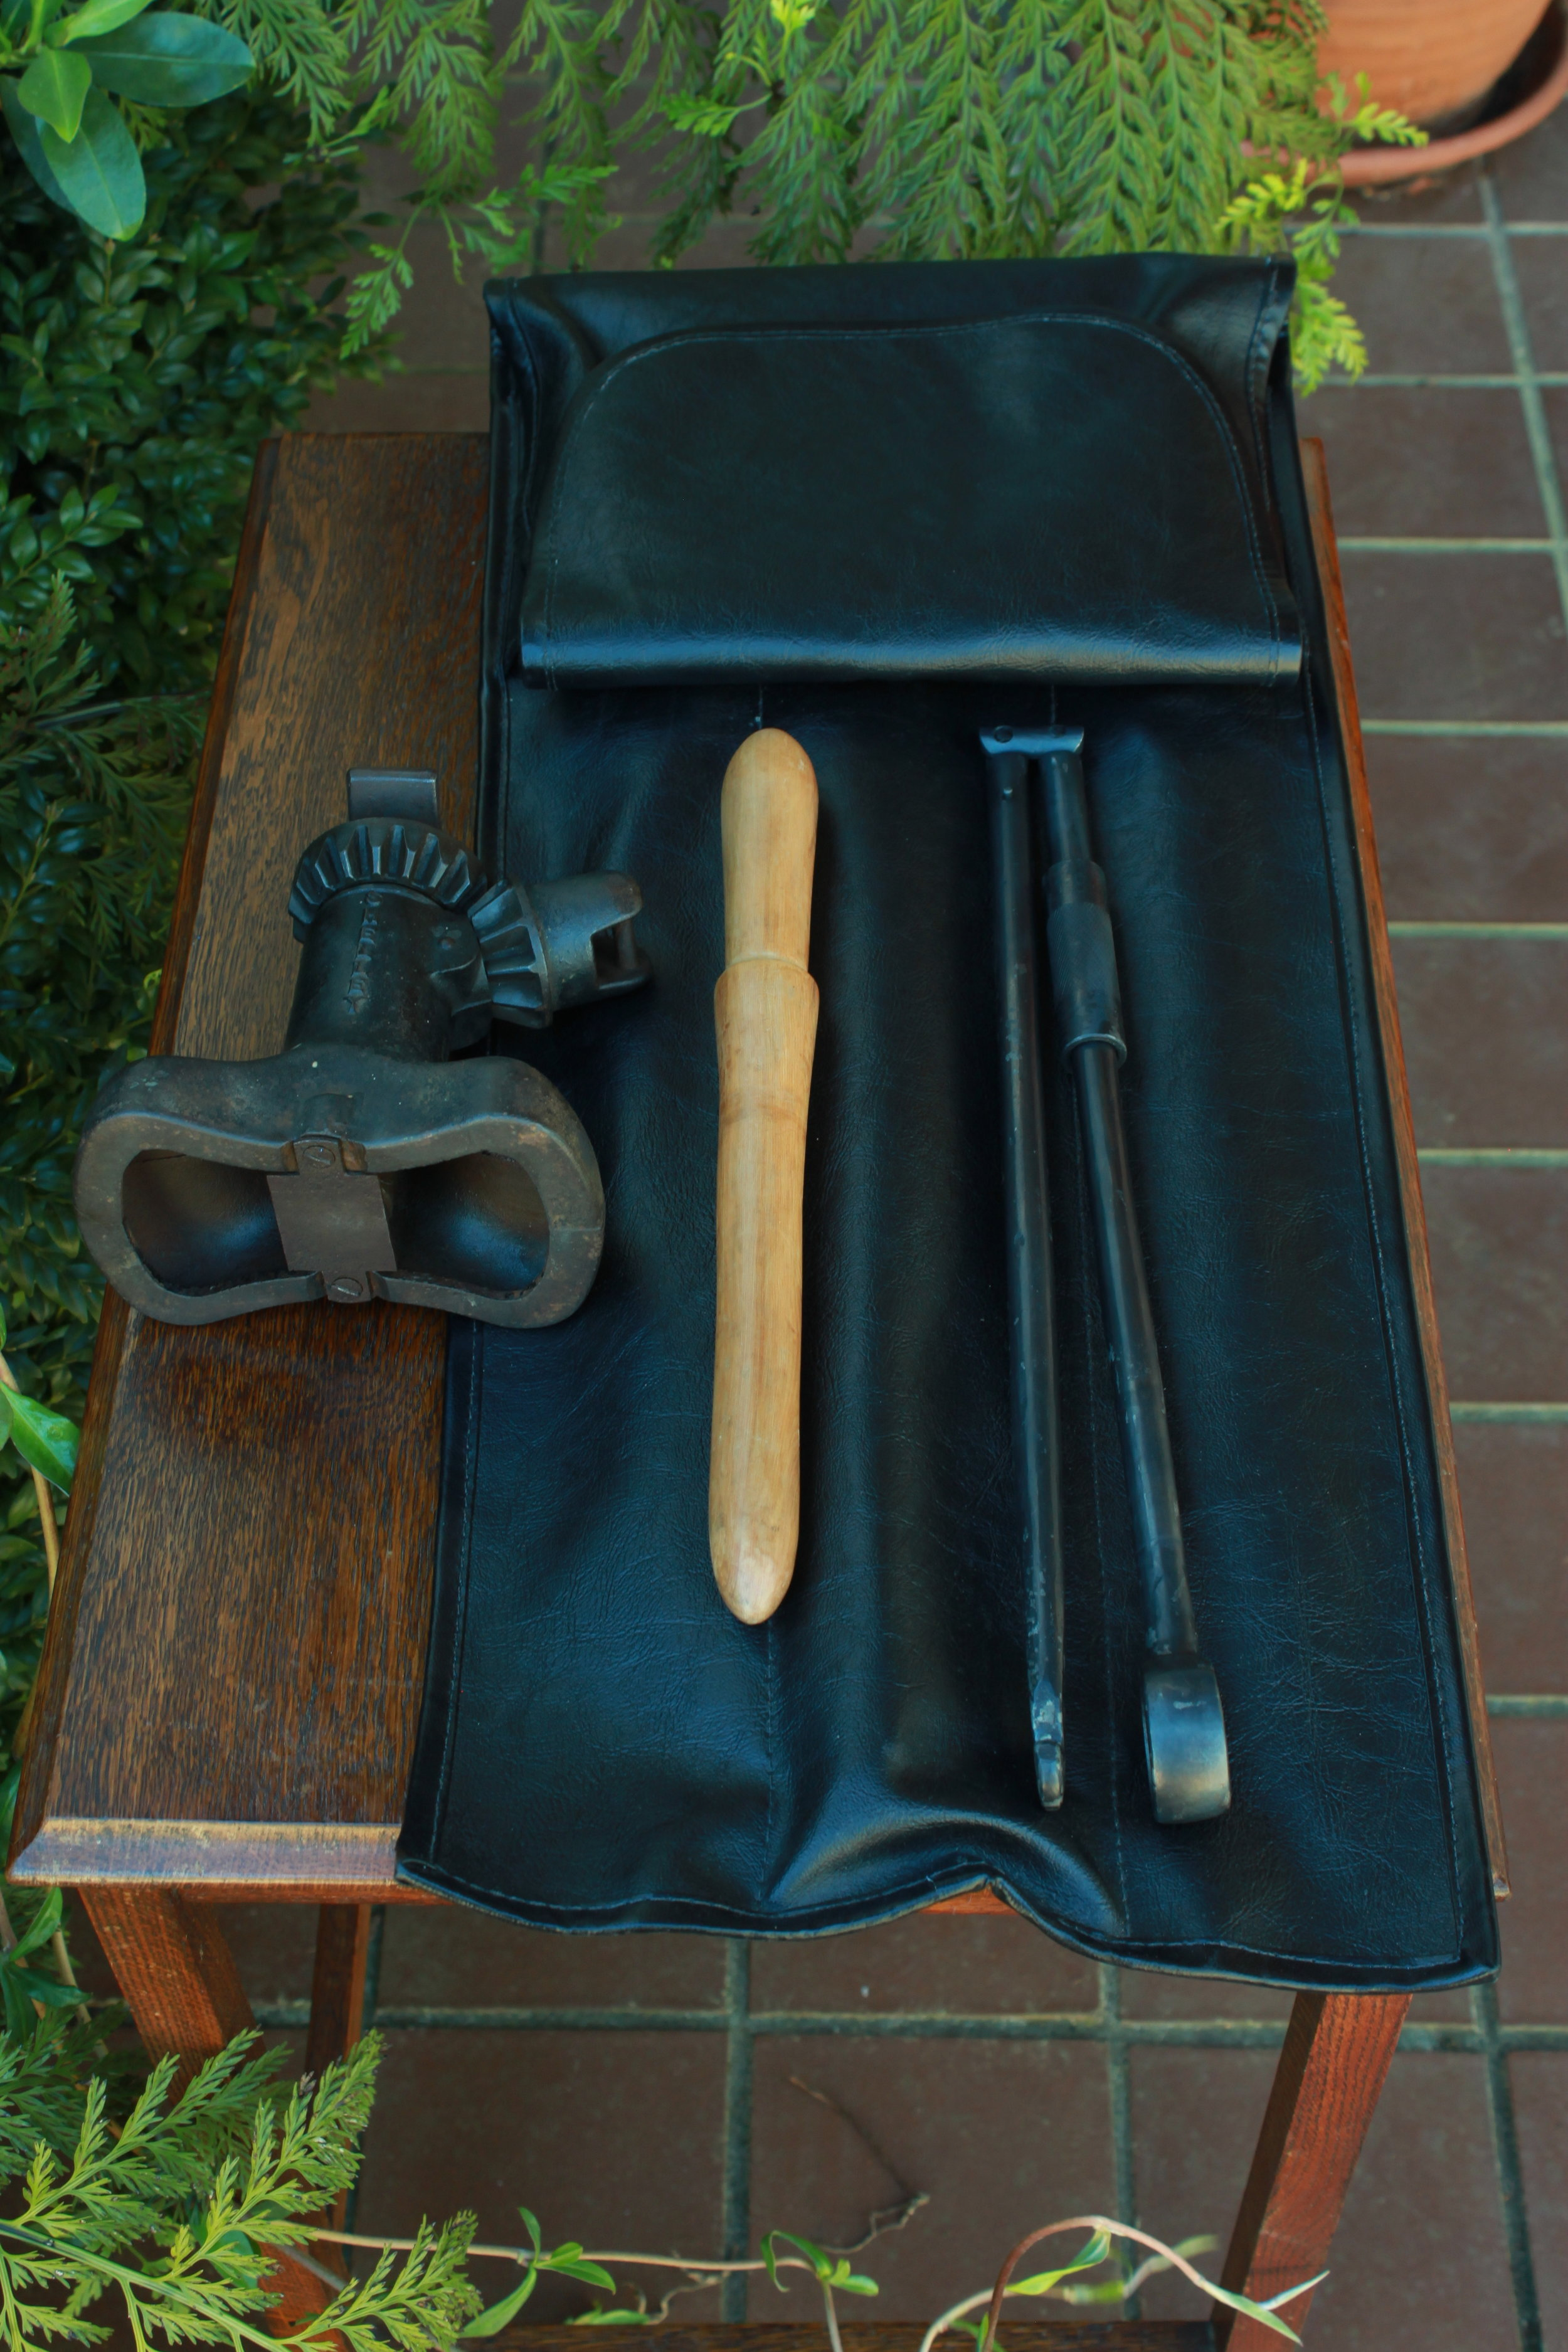 "PRE-WAR MG WHEEL JACK, HANDLE, AND ROLL   Tool kit prepared for concours car show  Pre-war Shelley 6""DL Jack and handle  Serviced jack  Fabricated wooden handle grip, hand forged and machined hook type handle. Forging by Te Kowhai Forge.   Designed and fabricated tool roll for jack and tyre pump"